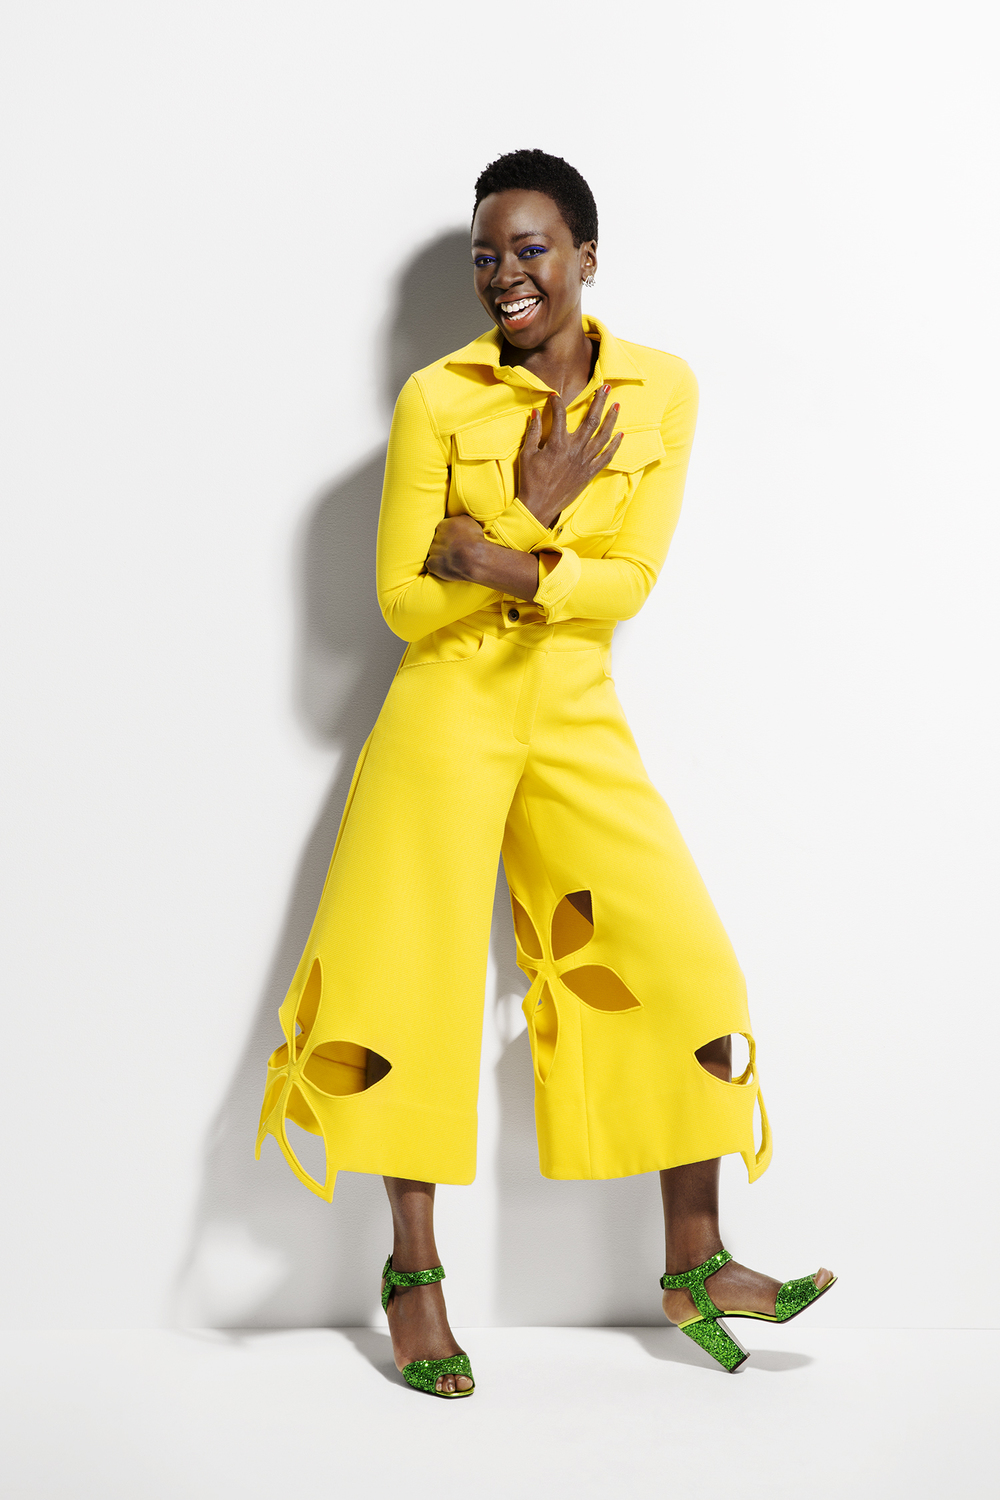 Danai_06_Shot_YellowSuit_RosieAssoulin_156_R.jpg